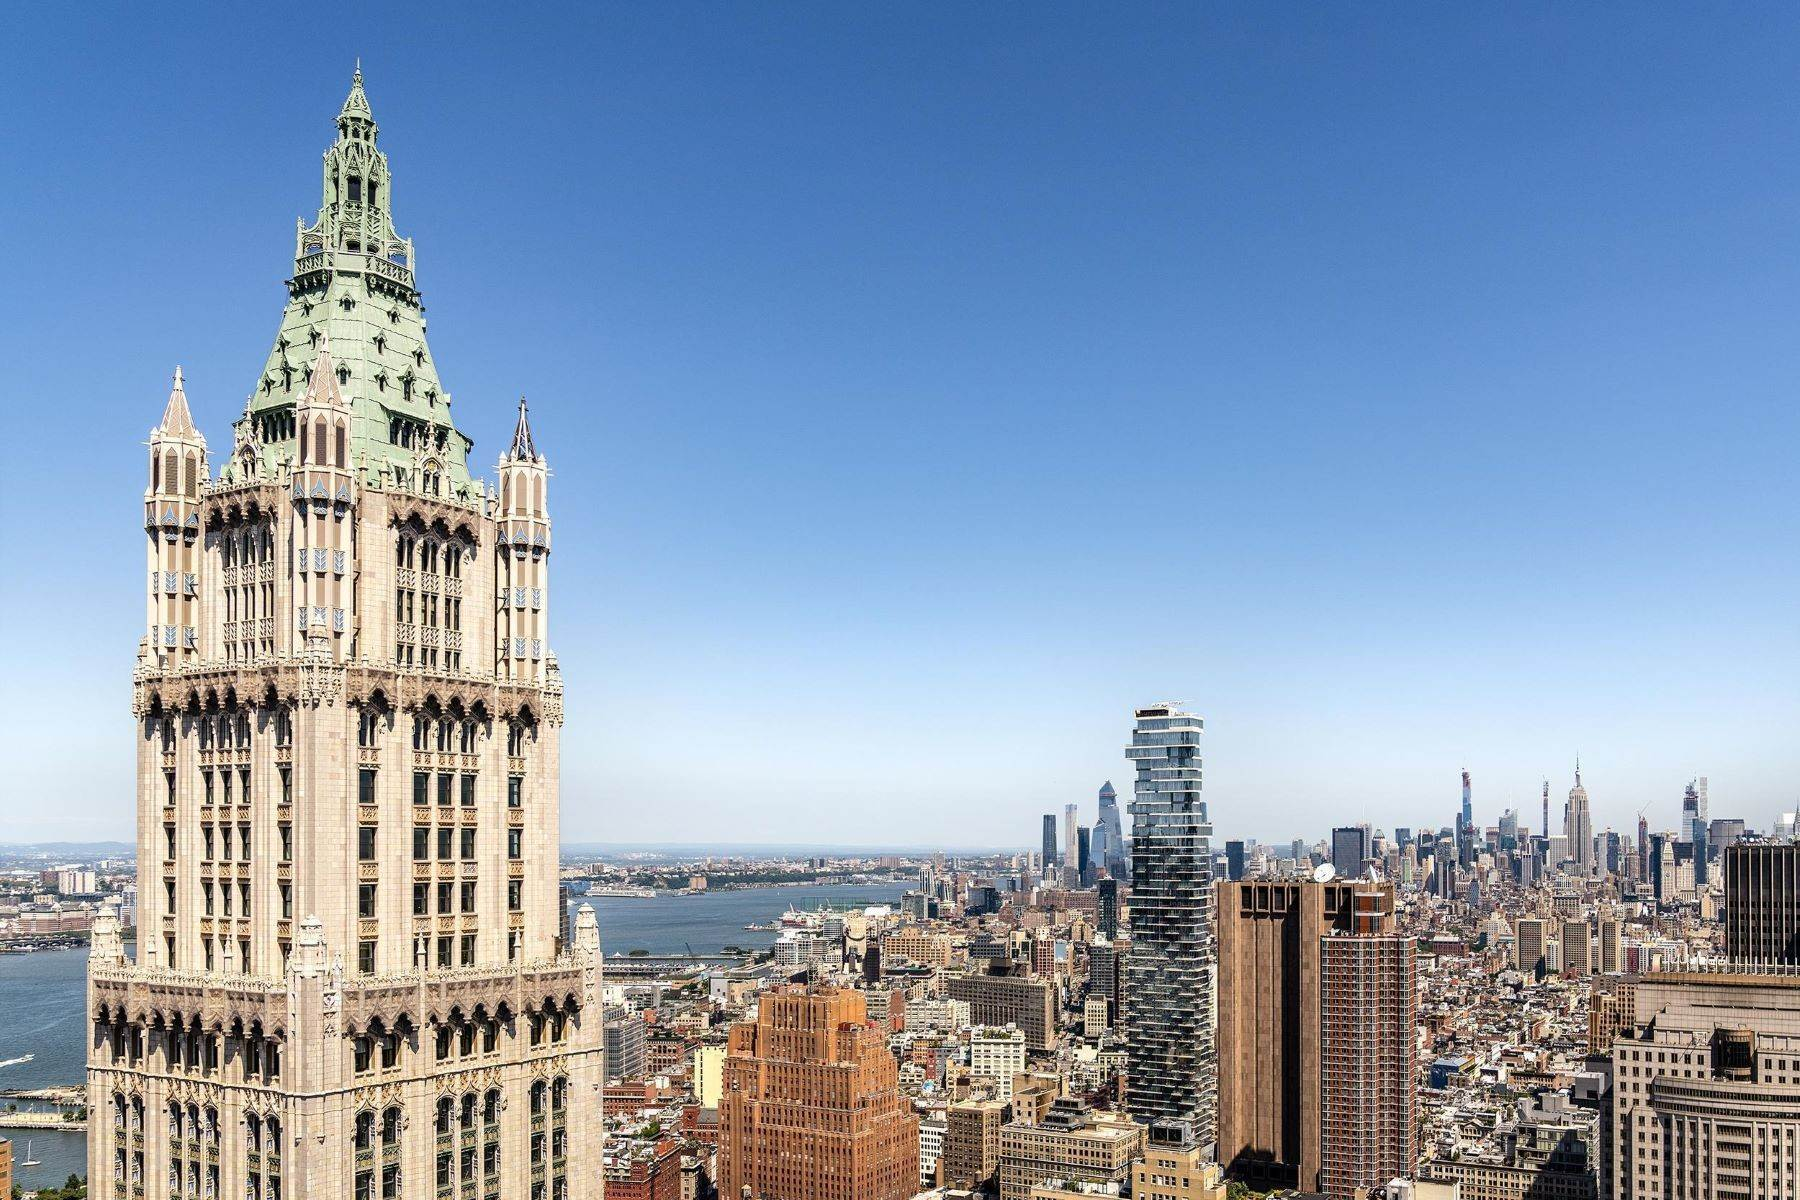 Property vid The Pinnacle Penthouse 2 Park Place, Pinnacle Penthouse, New York, New York 10007 Förenta staterna